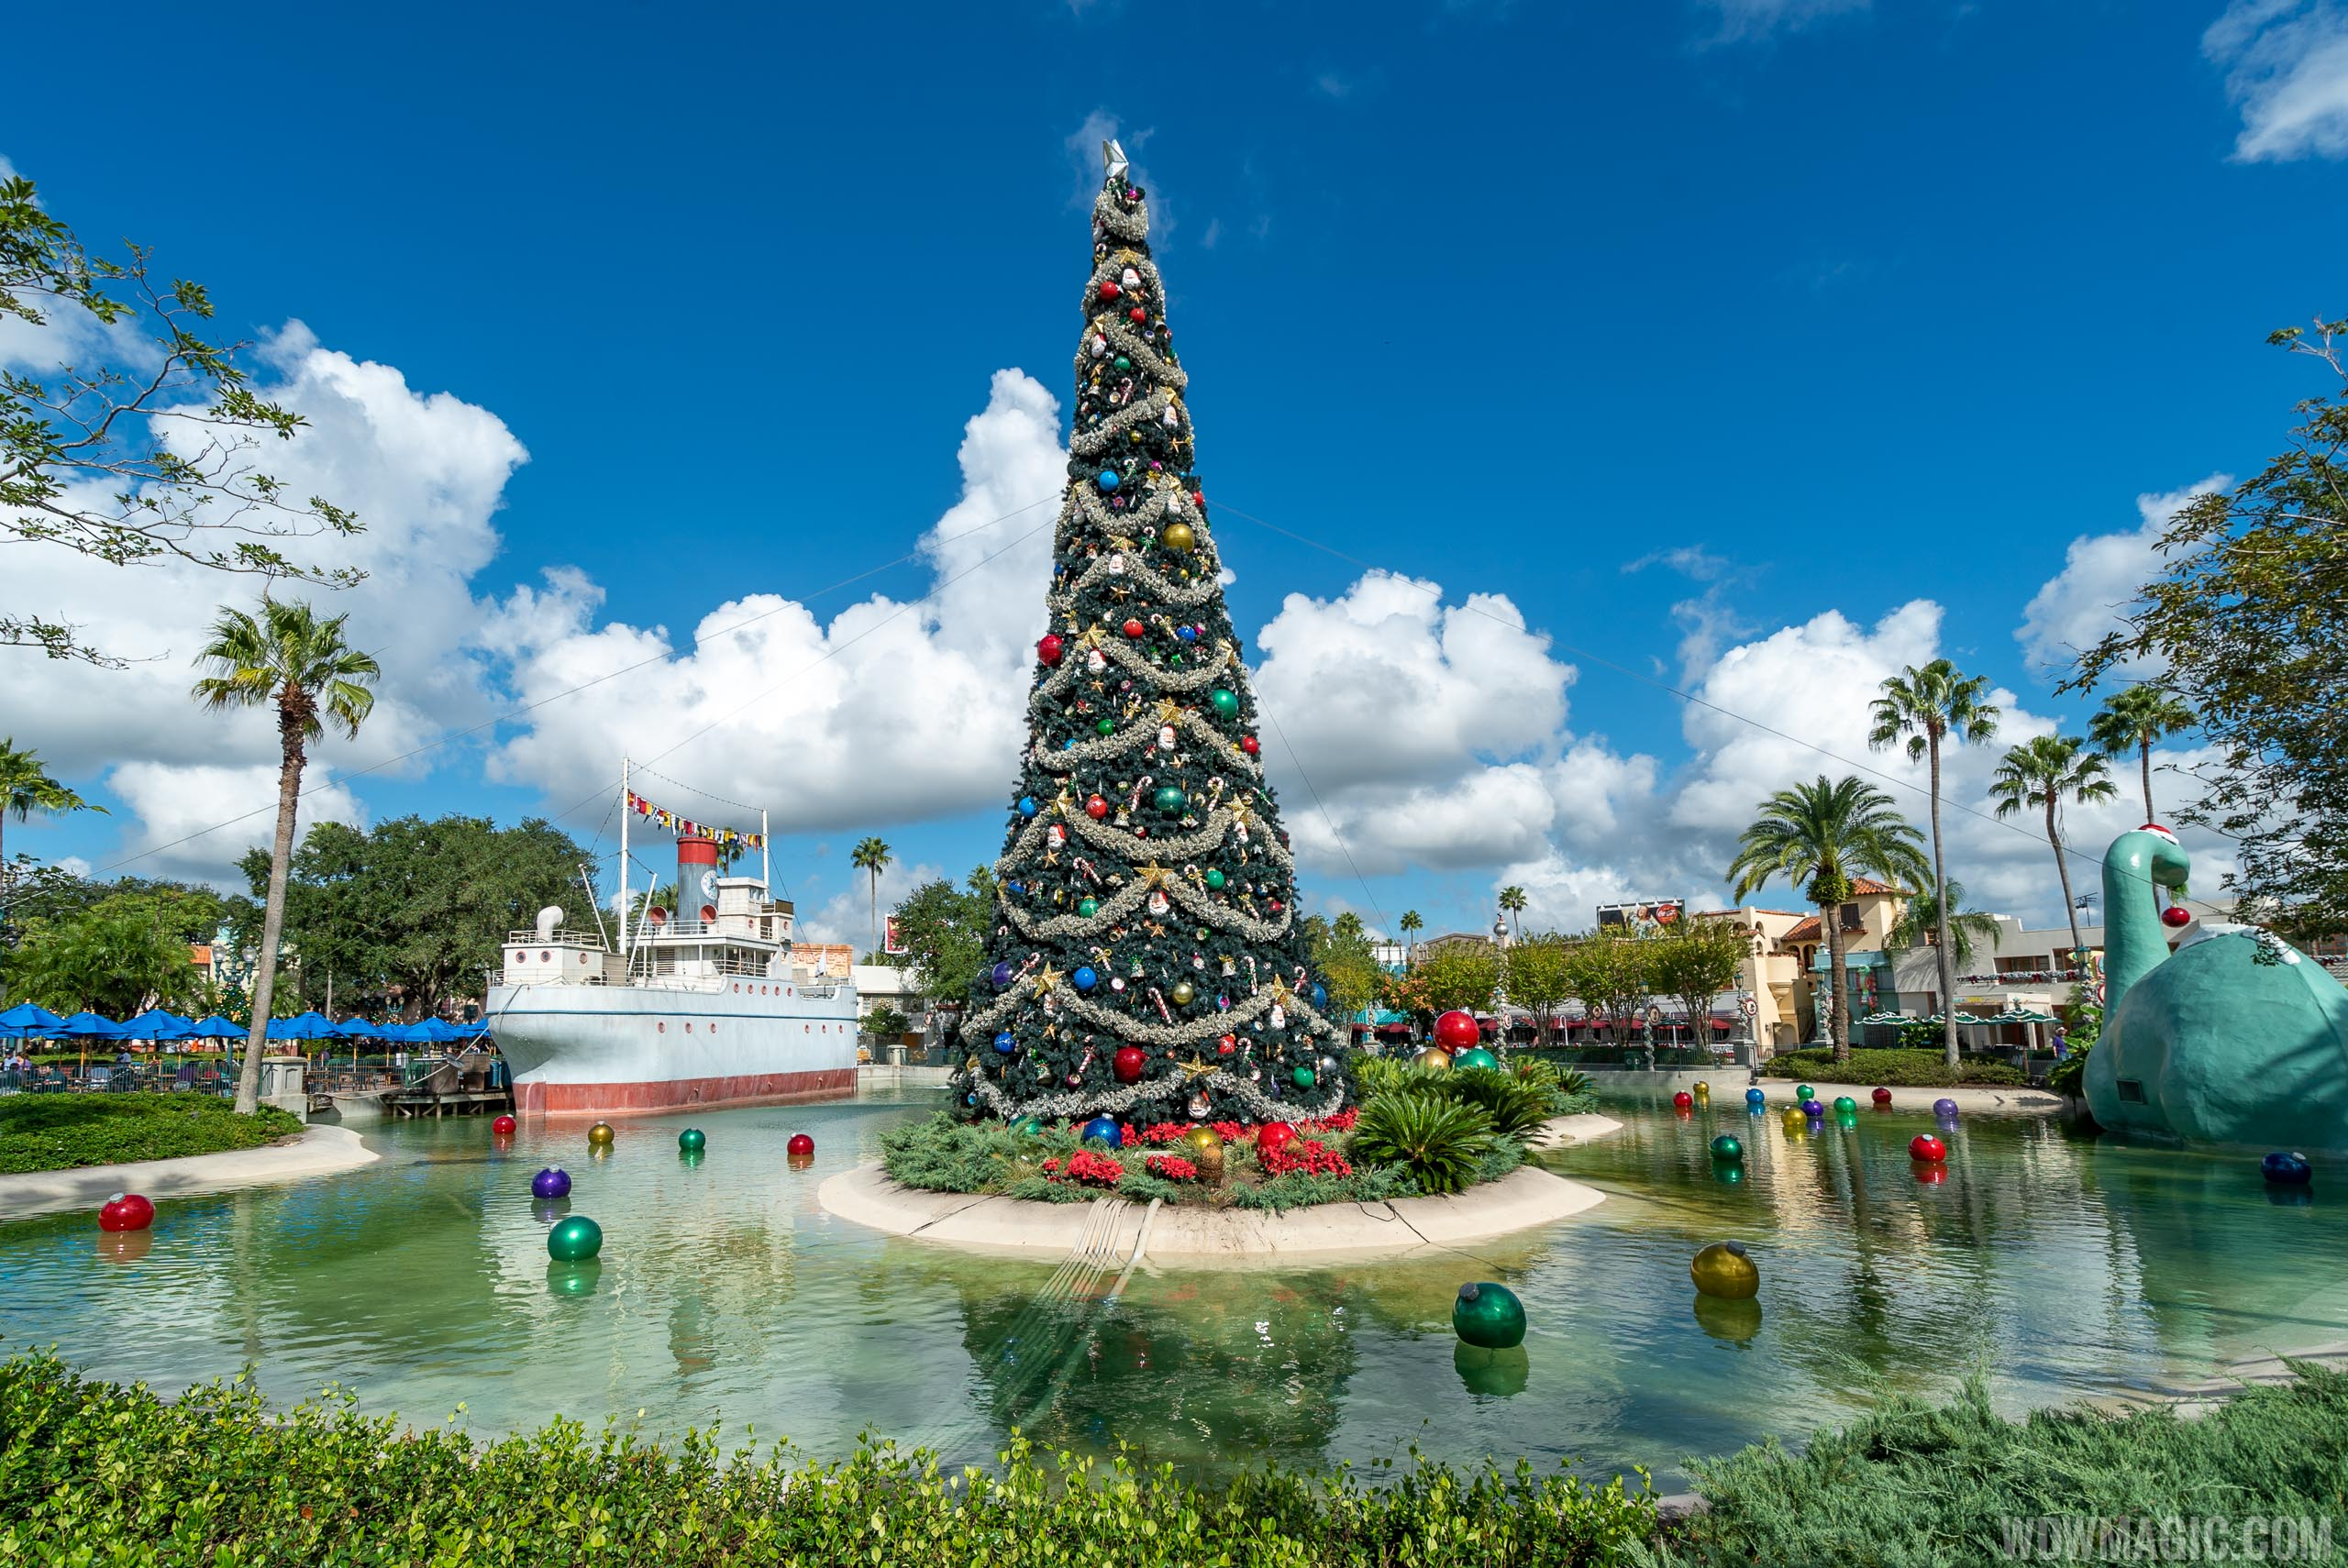 2019 Holiday Decorations at Disney's Hollywood Studios